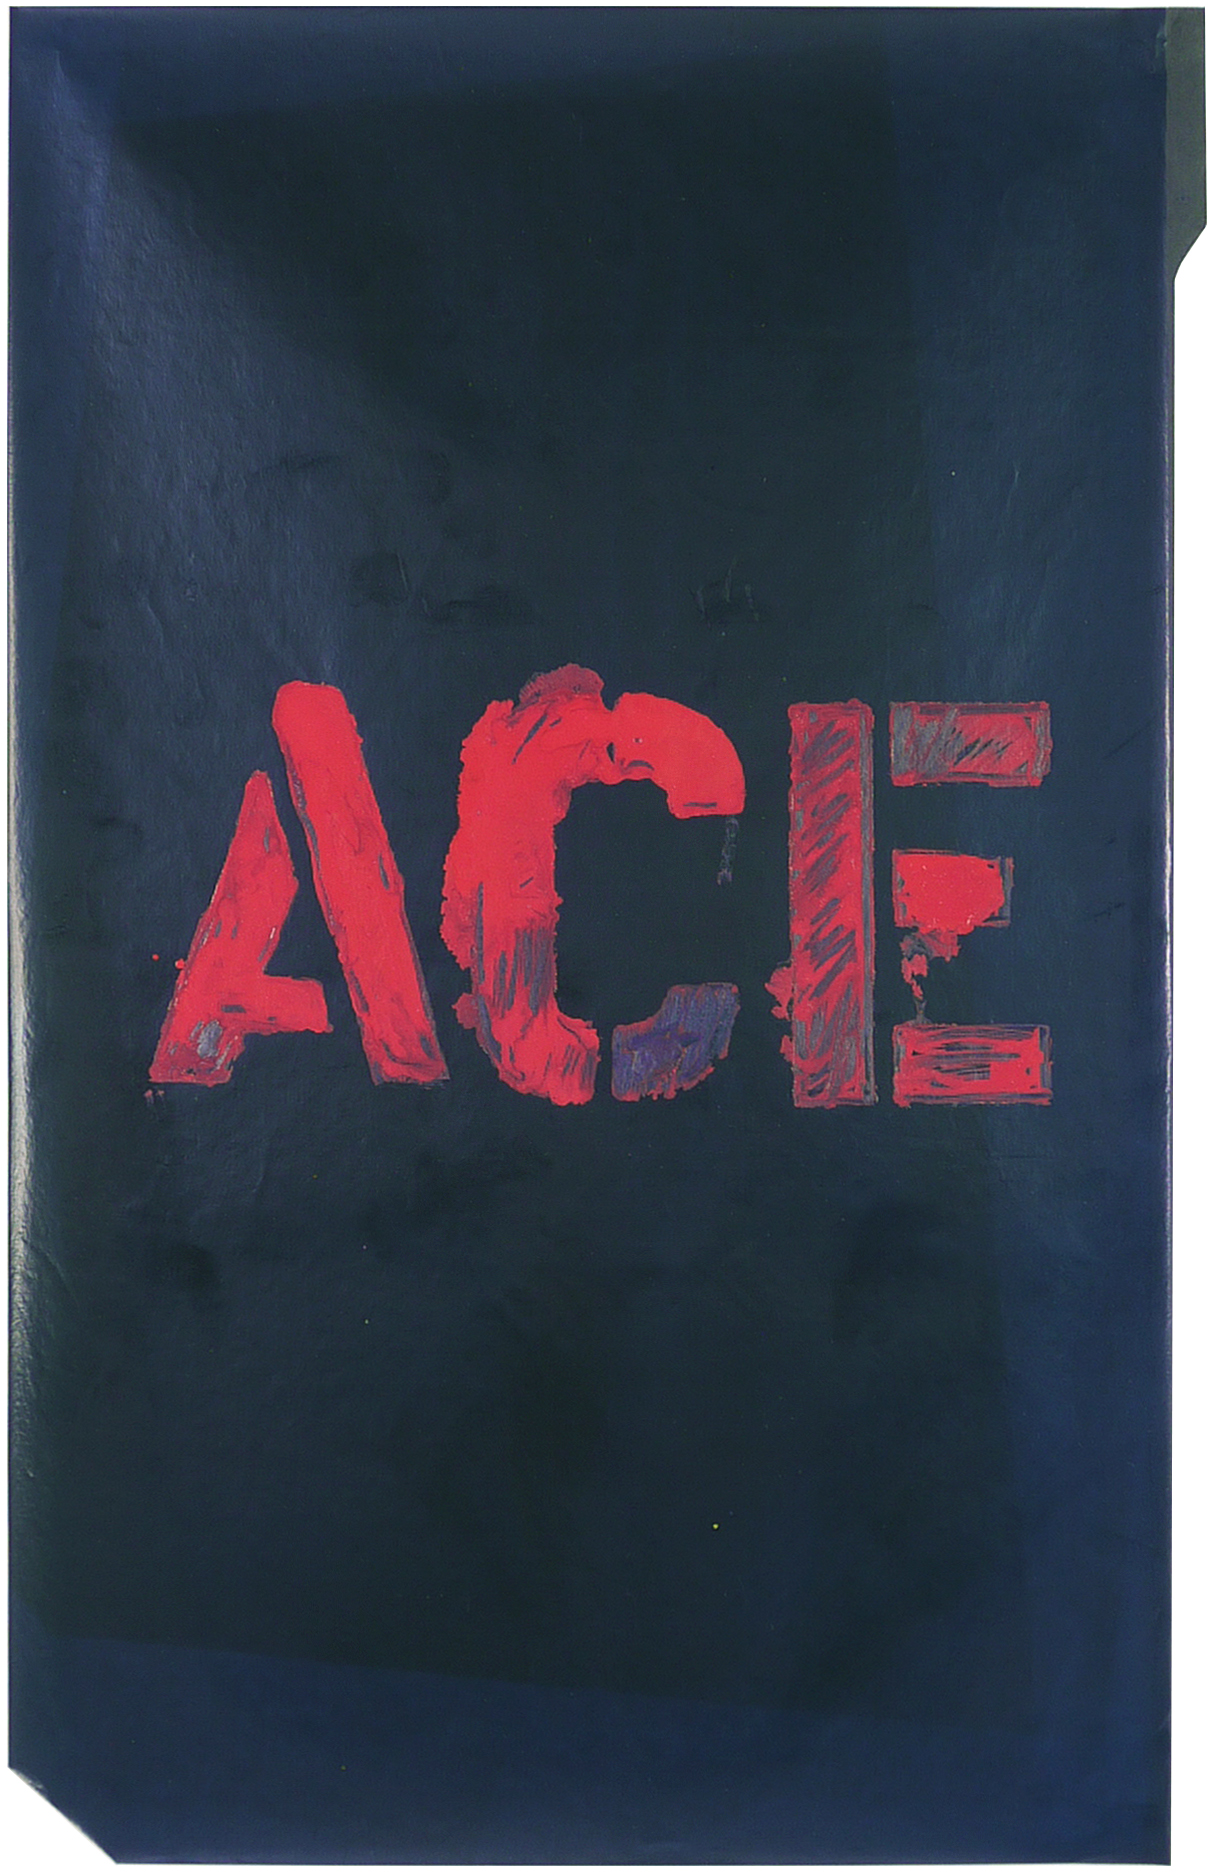 ace  8.5 x 14 inches  jiffy on carbon paper  ed. 1